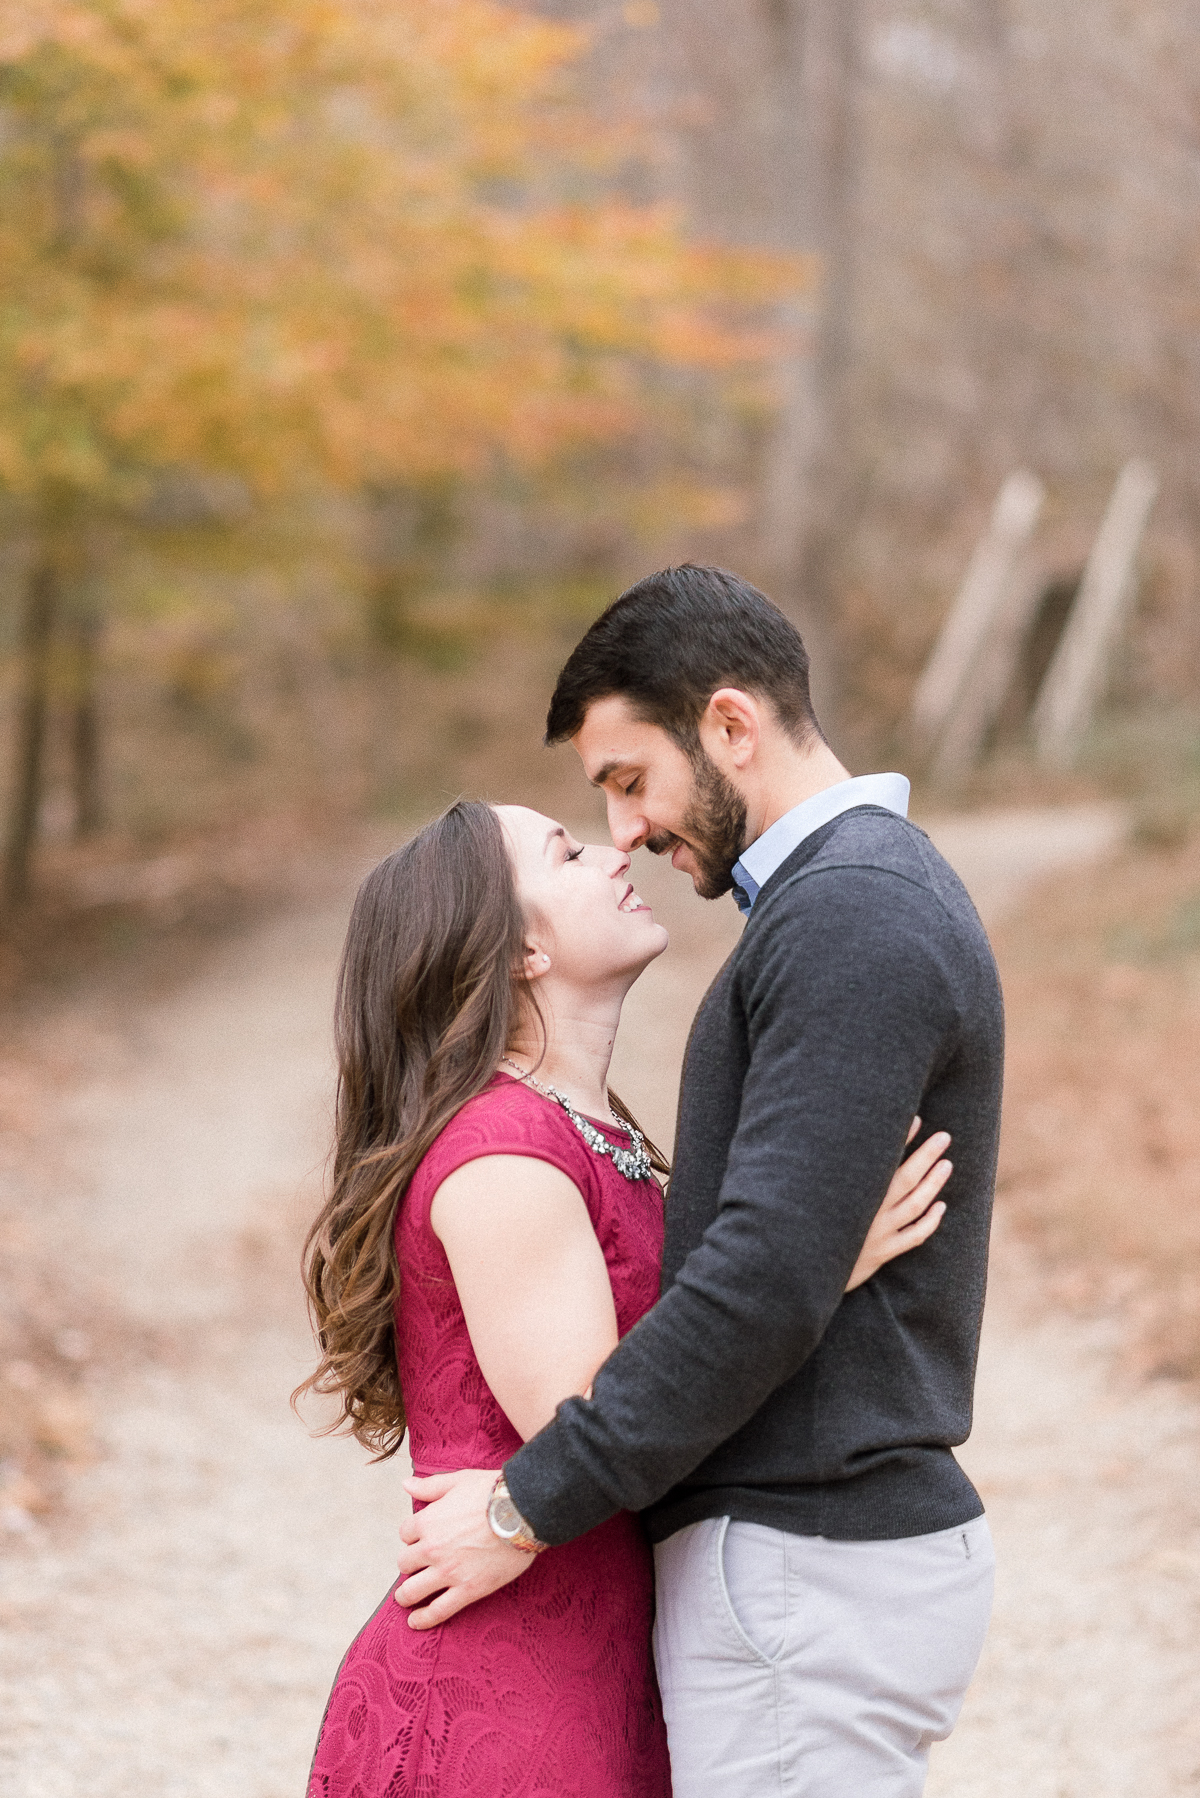 MD-Great-Falls-Engagement-Session-With-Dog-Fall-Foliage-38.jpg